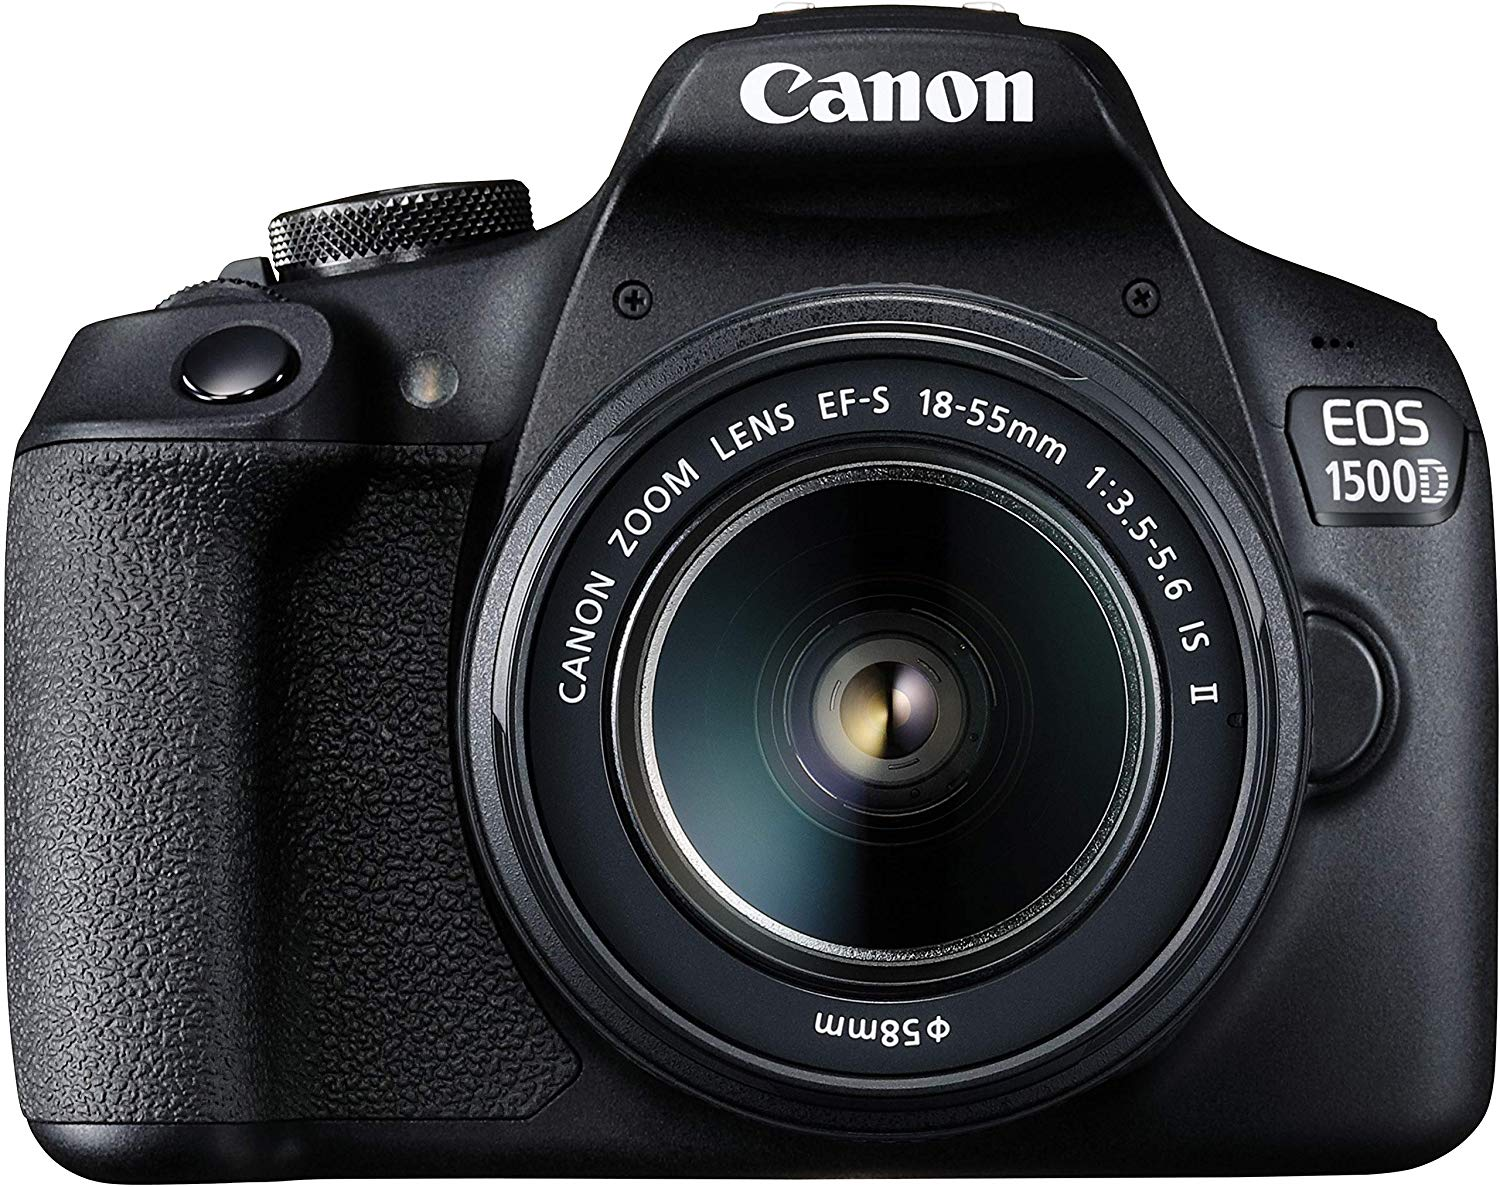 Buy Canon EOS 1500D 24.1 DSLR Camera, 16GB Card at Rs. 21,990 Only From Amazon